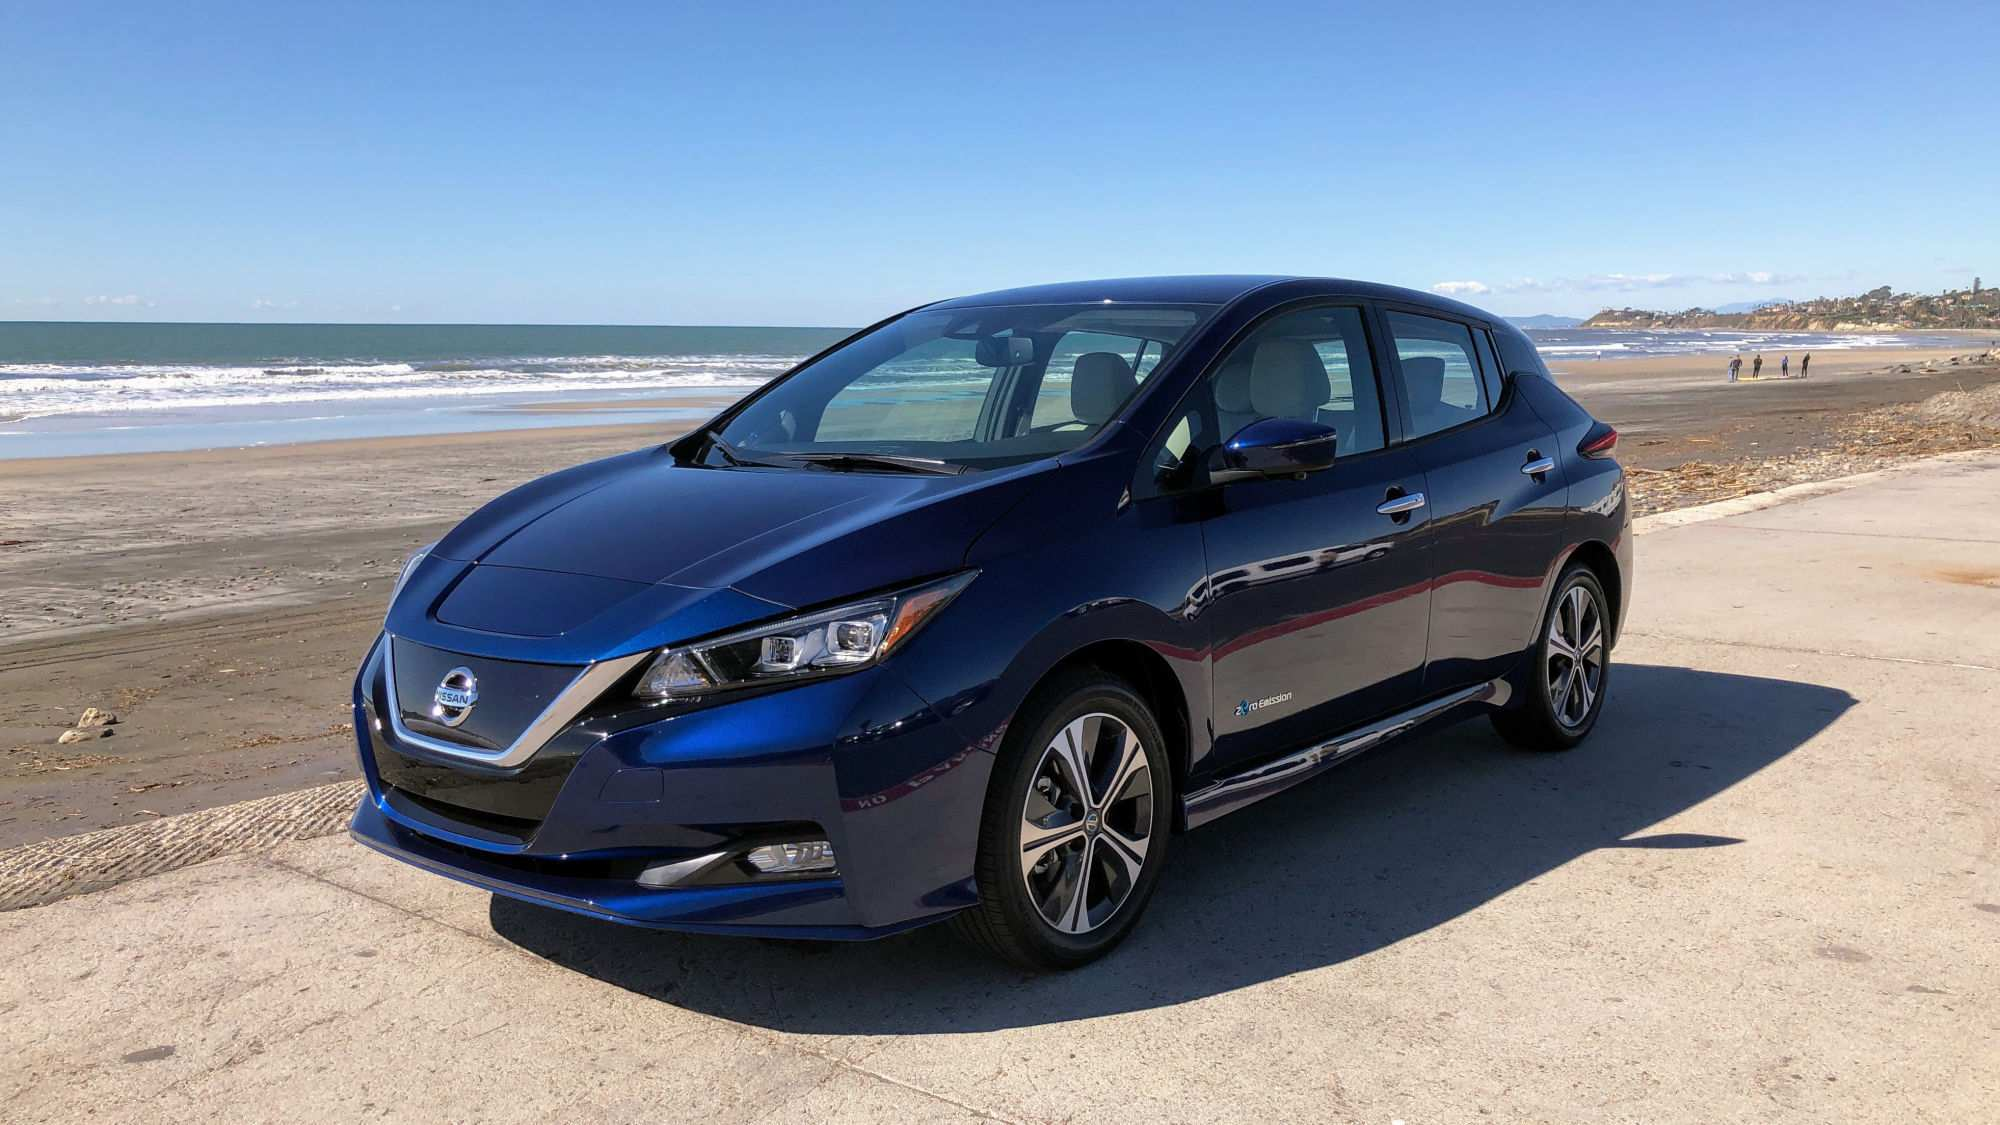 98 The Best Nissan Leaf 2019 Review Wallpaper